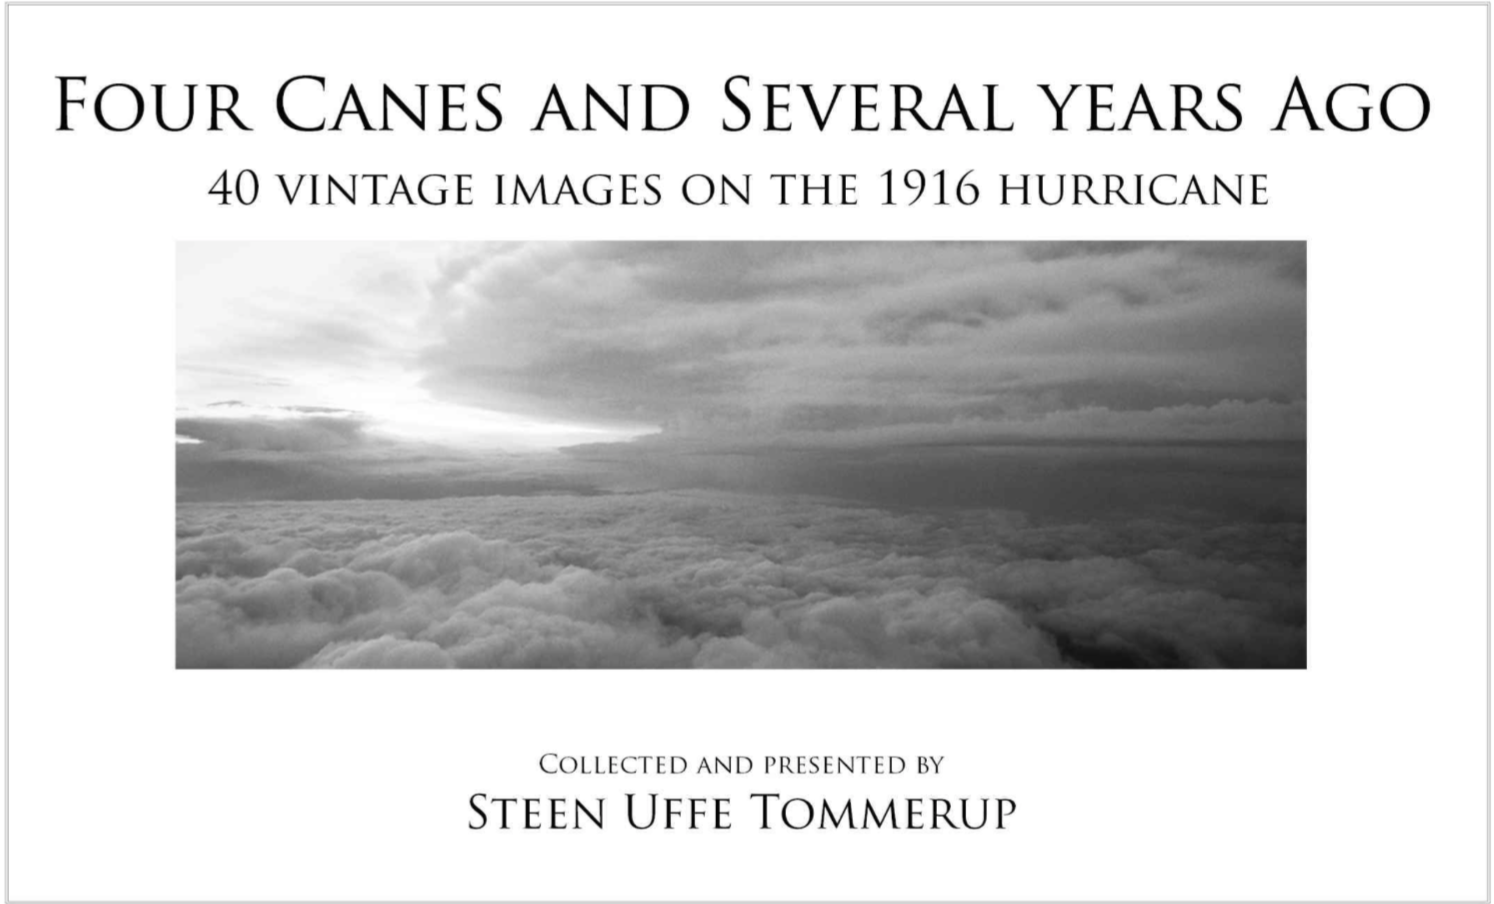 Four Canes and Several years ago by Steen Uffe Tommerup